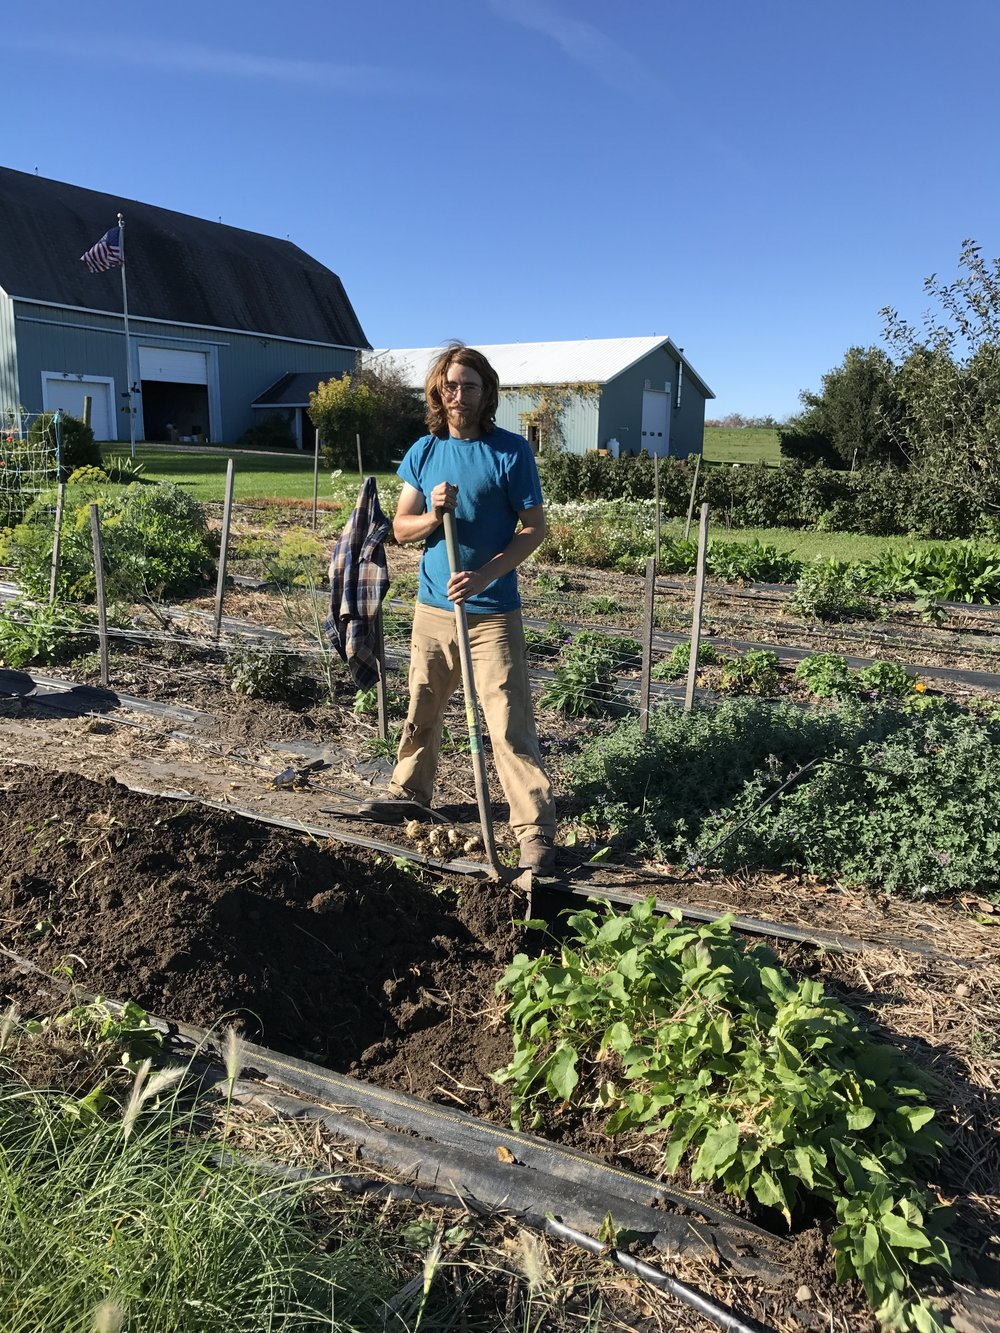 Nick   Nick has been working on the farm since 2012. He has an extensive knowledge base in farming and permaculture design, and is being mentored by Hal on mechanical skills.  He owns his own property which he is turning into a farm.  He is a valued member of our team year round.